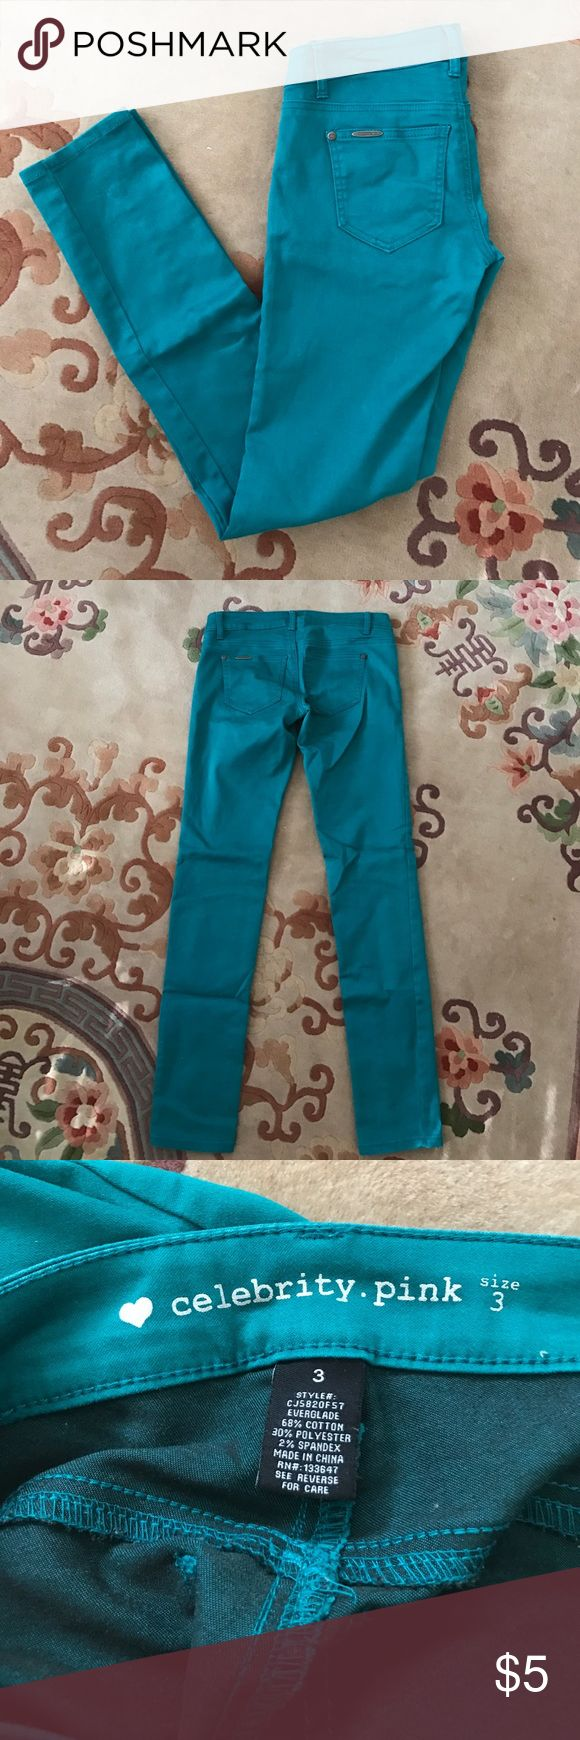 "Celebrity Pink Teal Jeans These are a size junior's 3 pair of teal jeans by Celebrity Pink! They're in great shape and all pockets on the front and back are functional! Inseam measures 31"". Celebrity Pink Jeans Straight Leg"